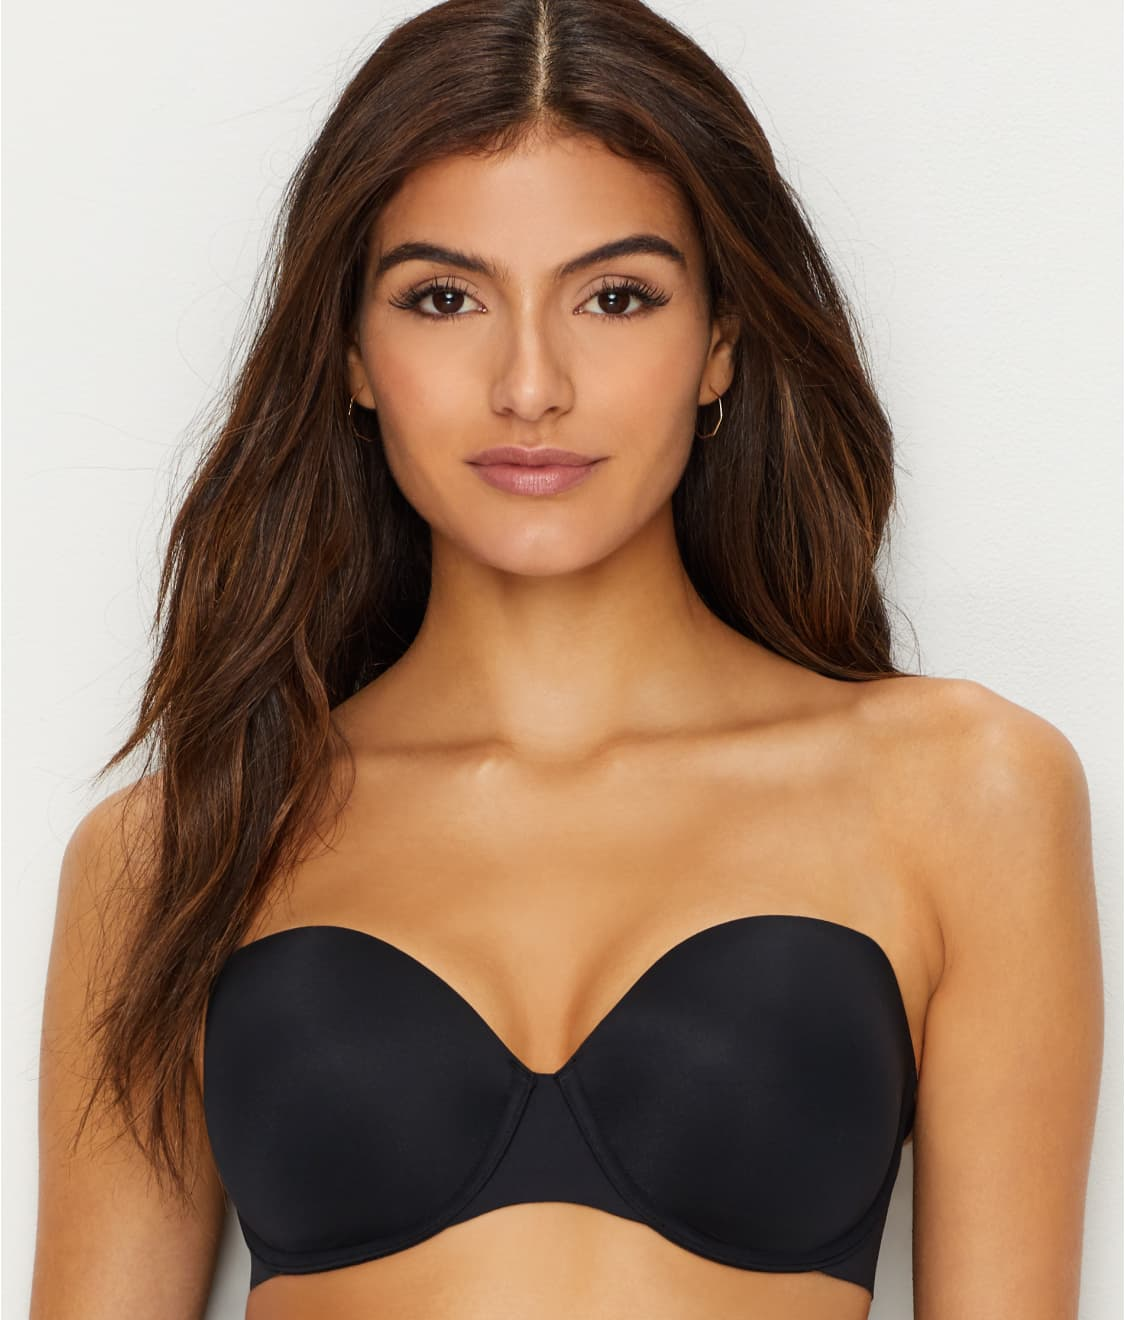 See Up For Anything Strapless Bra in Very Black 61efafe48